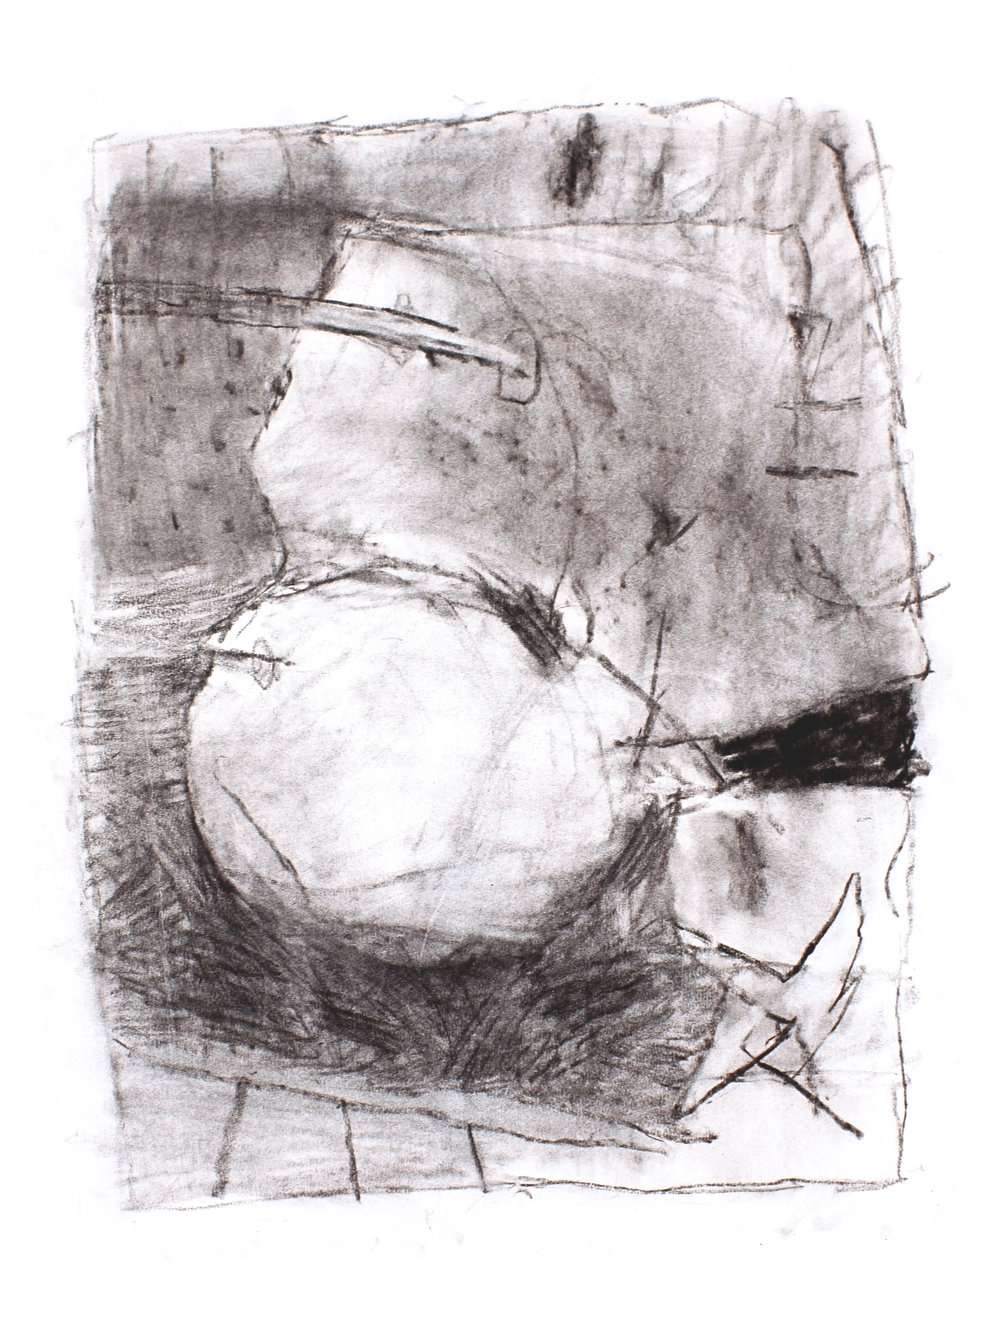 1984_Untitled_charcoalonpaper_30x22_WPNF052.jpg